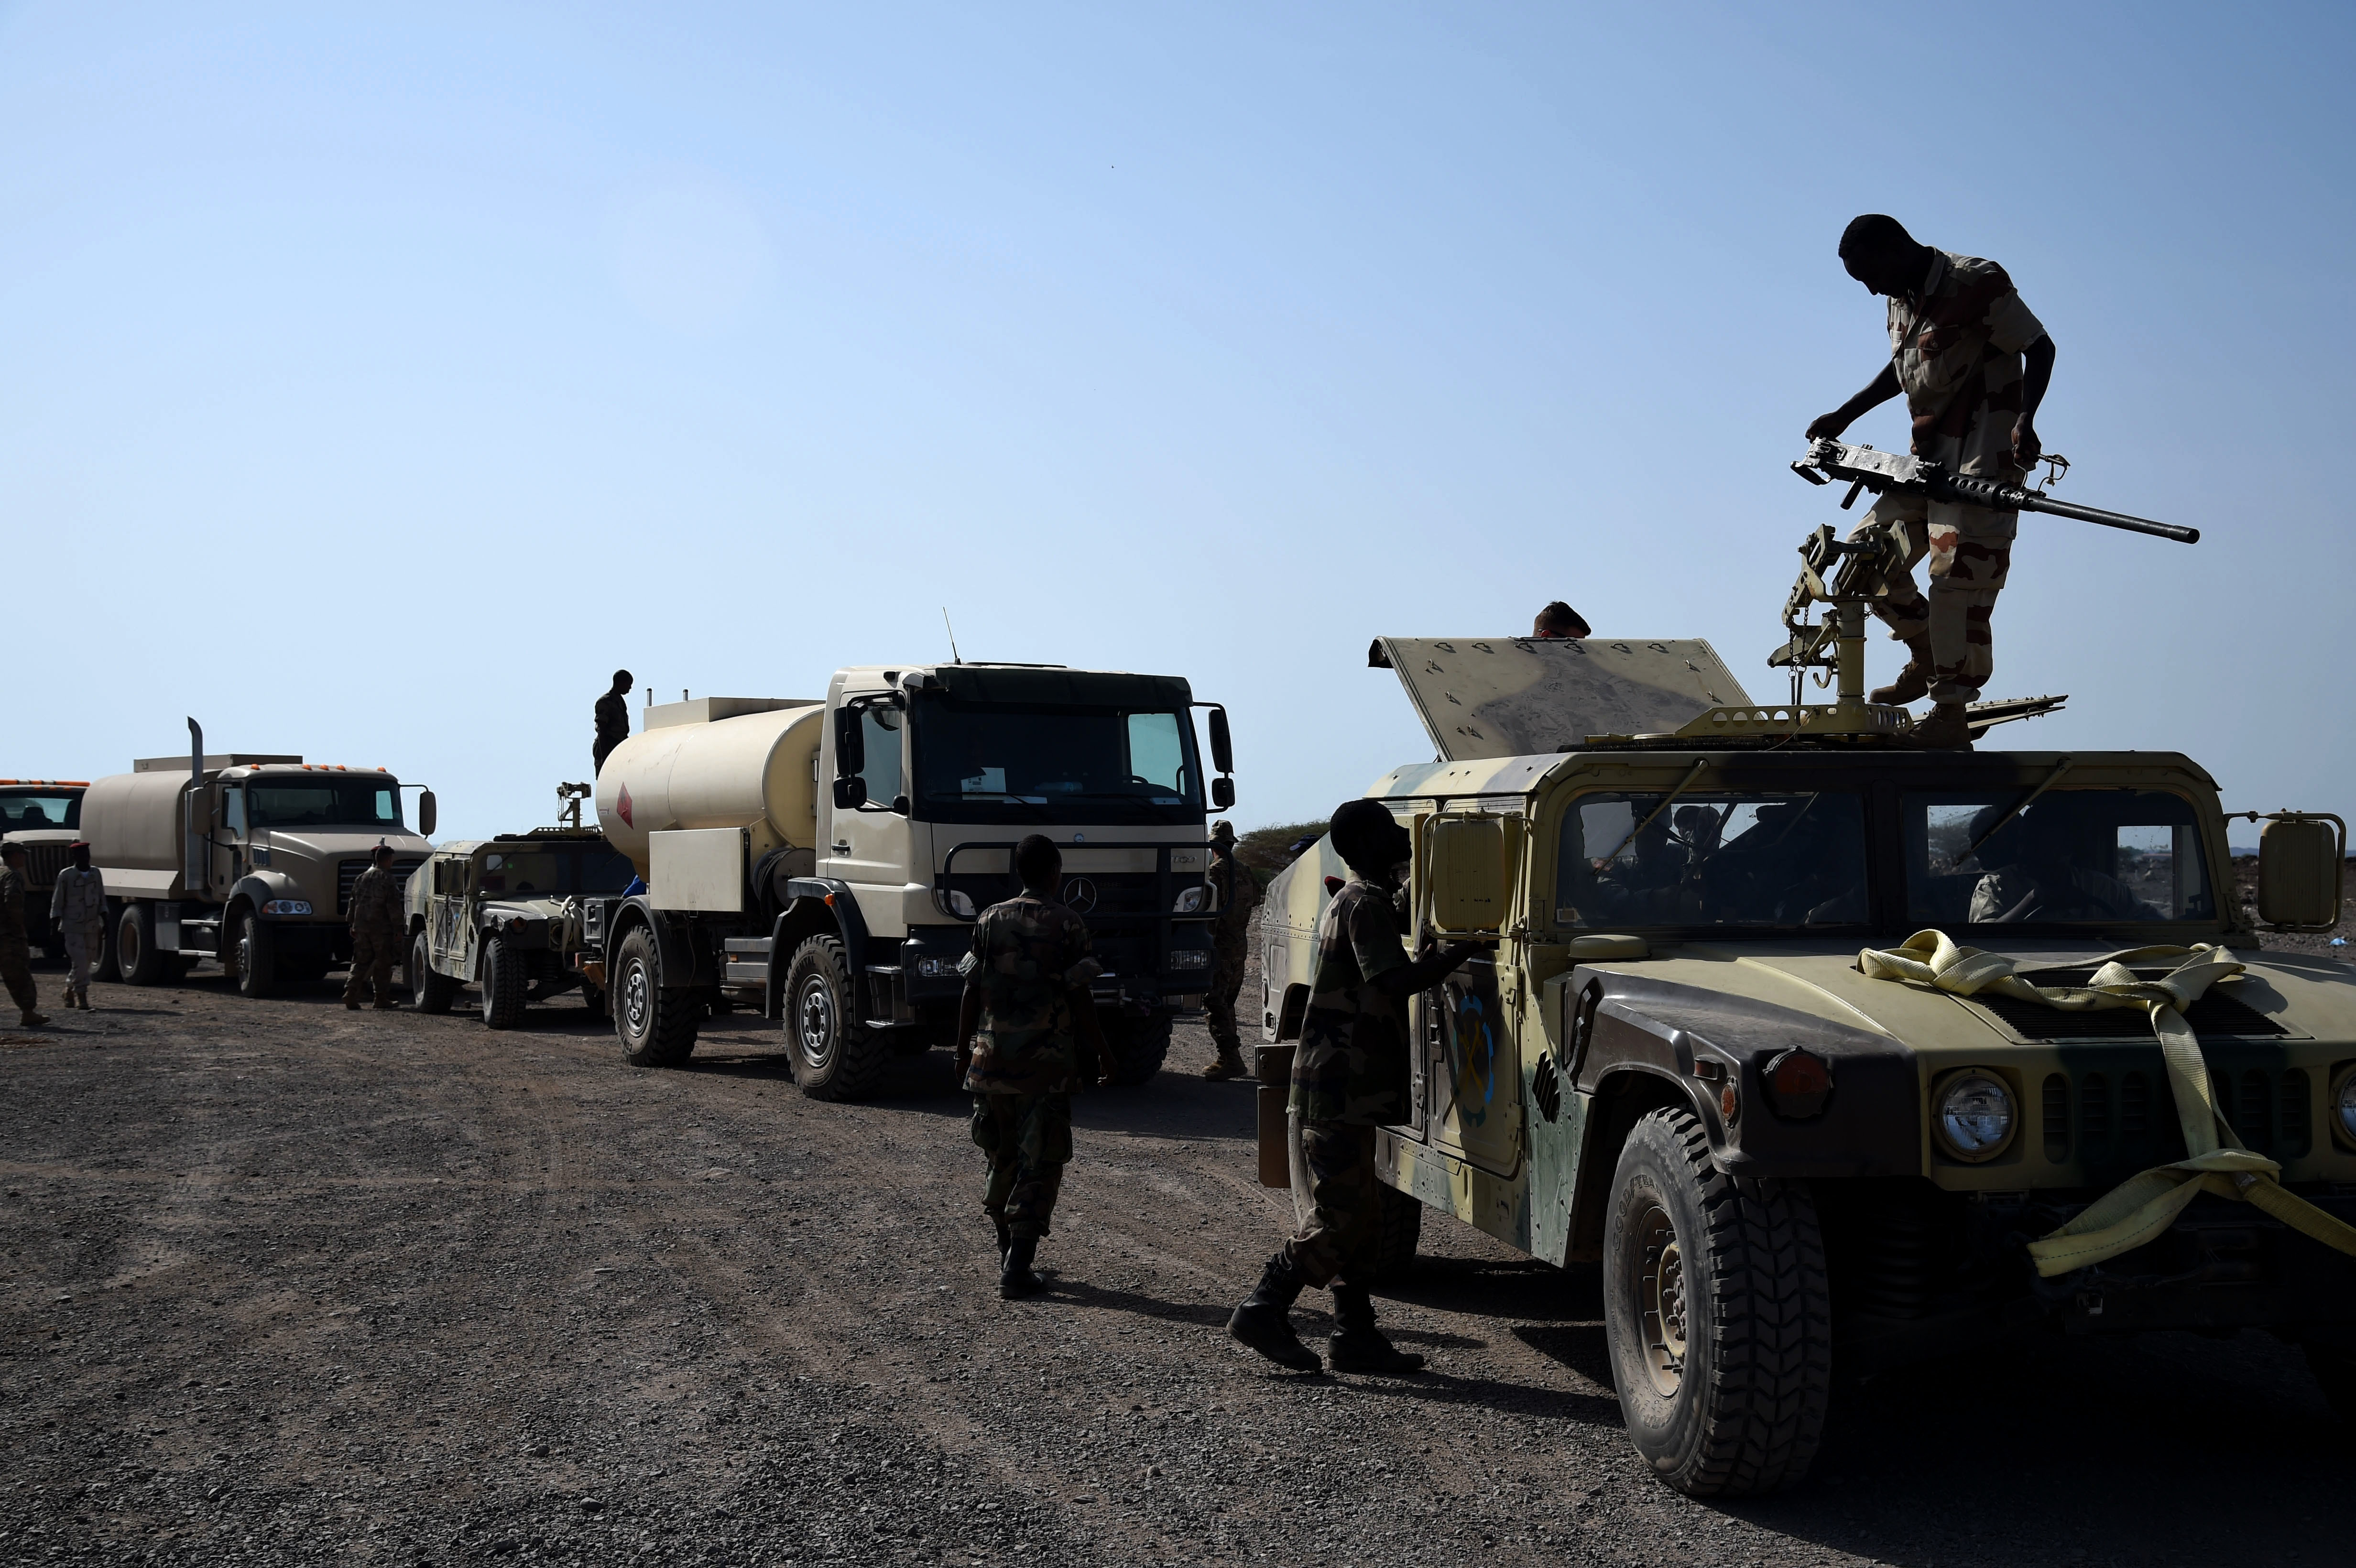 CAMP CHEIK OSMAN, Djibouti – Djiboutian Armed Forces (FAD) Soldiers prepare their convoy for the final test after completing a five-month training course instructed by the U.S. Army Regionally Aligned Forces Soldiers, May 16, 2016, at Camp Cheik Osman, Djibouti. The three-phased training was completed demonstrating their reactions to various mock situations from convoying through a road block, identifying mock roadside bombs, medical care, and vehicle recovery. (U.S. Air Force photo by Staff Sgt. Tiffany DeNault/Released)